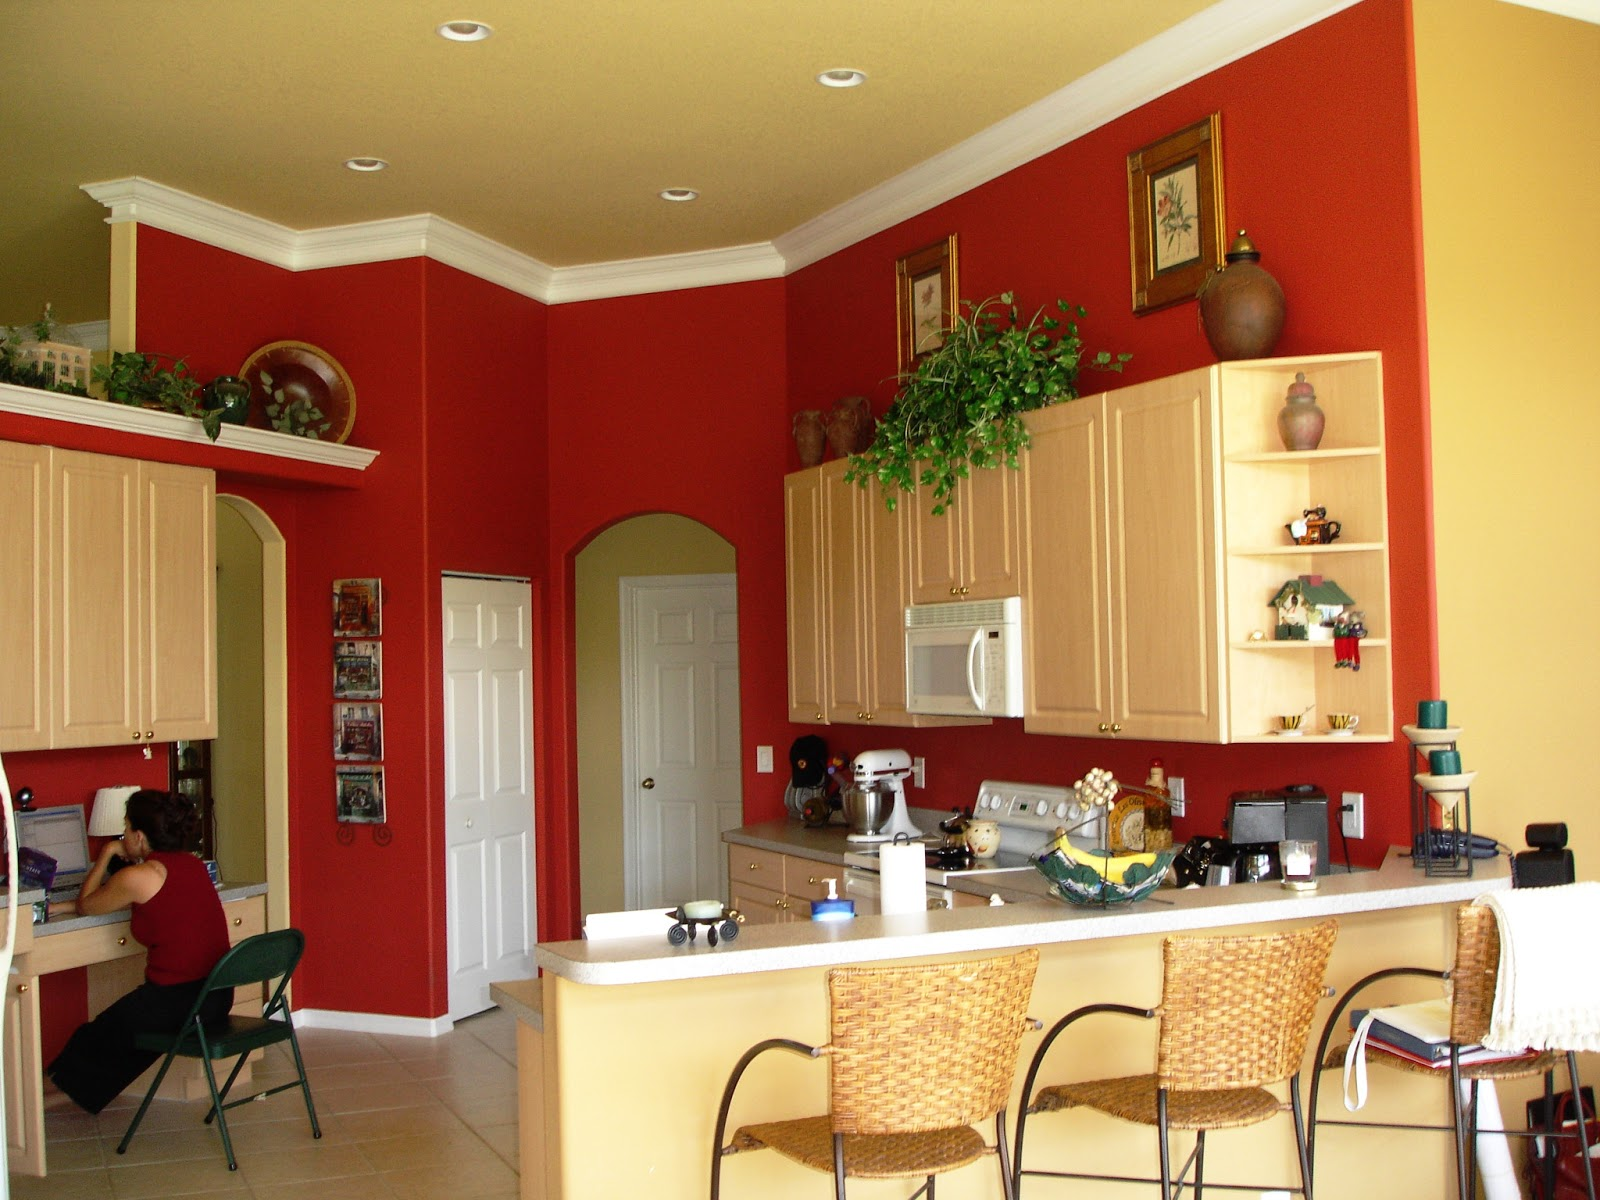 rooms and kitchens If you ask me, red looks great in many areas